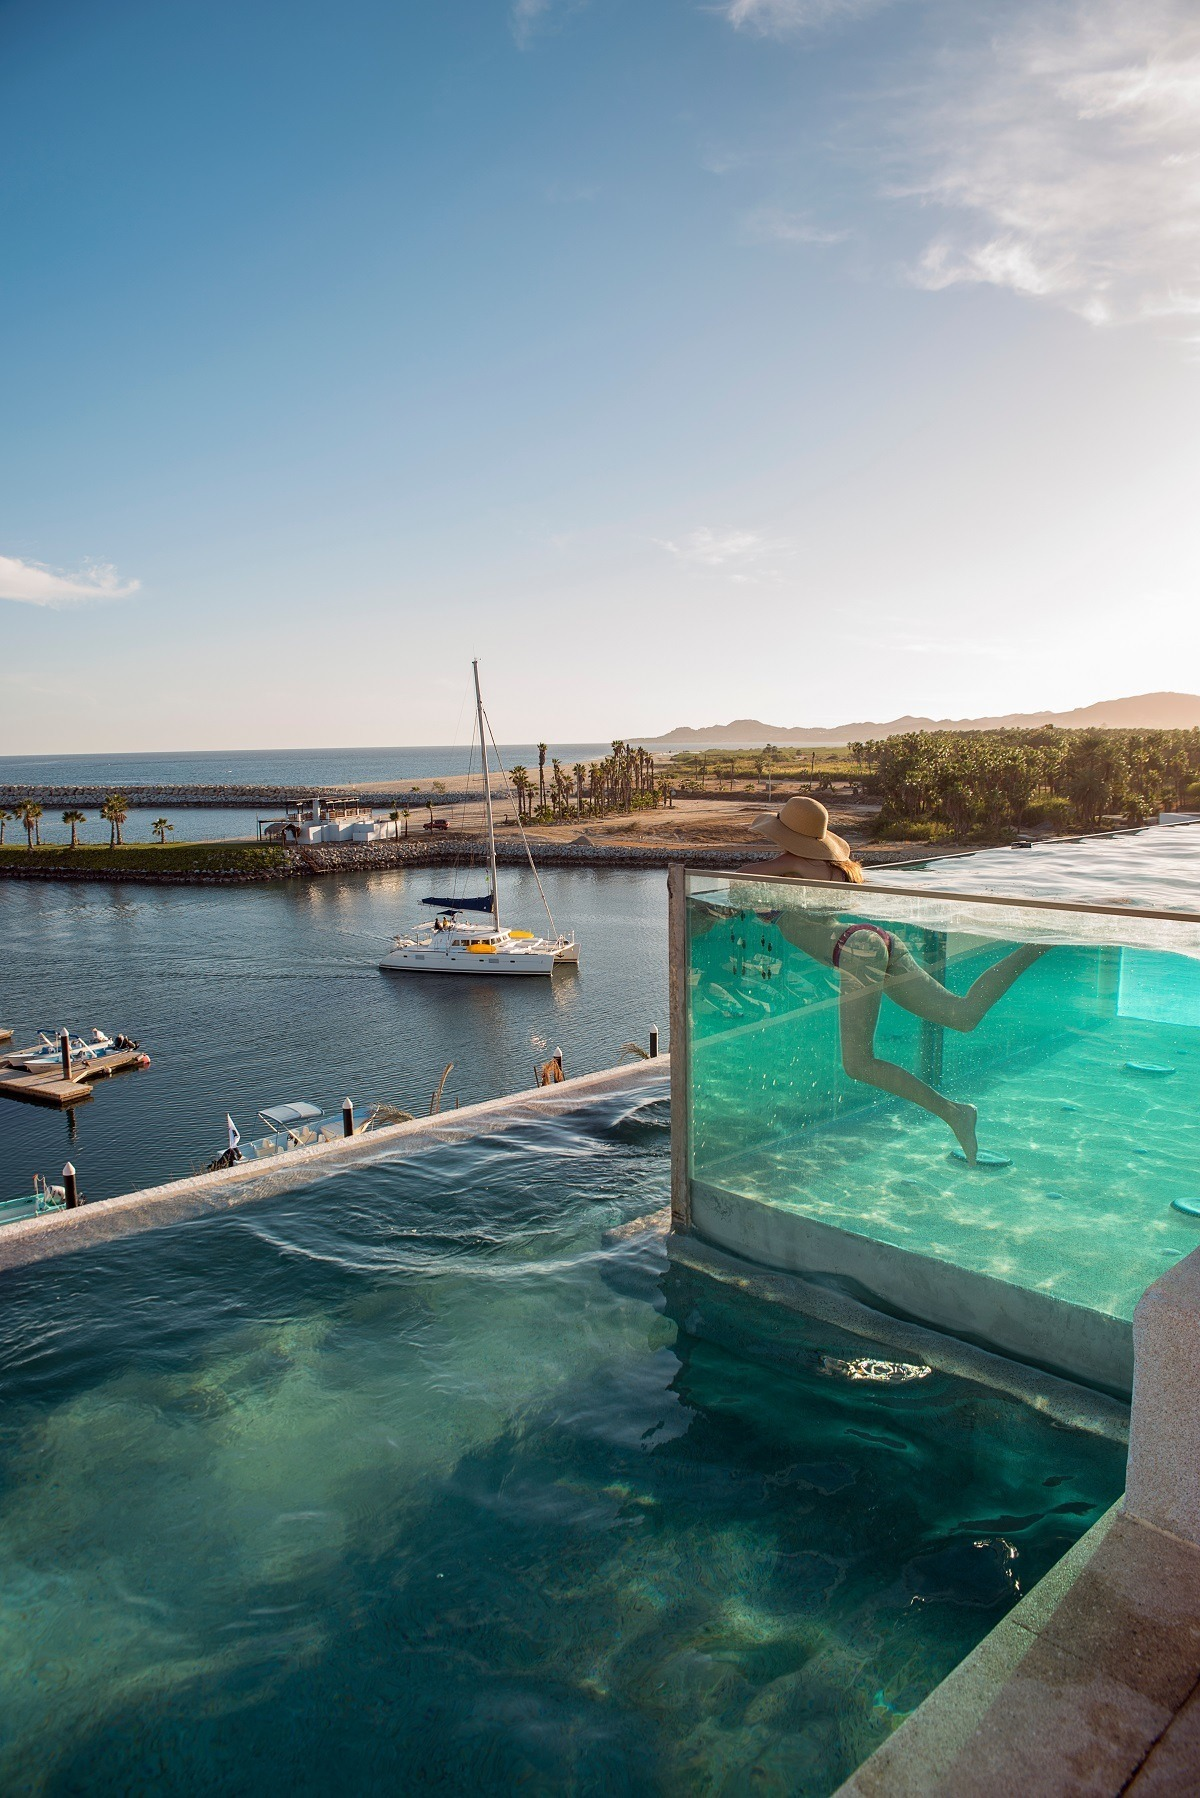 9 Most Spectacular Hotel Rooftops in the World